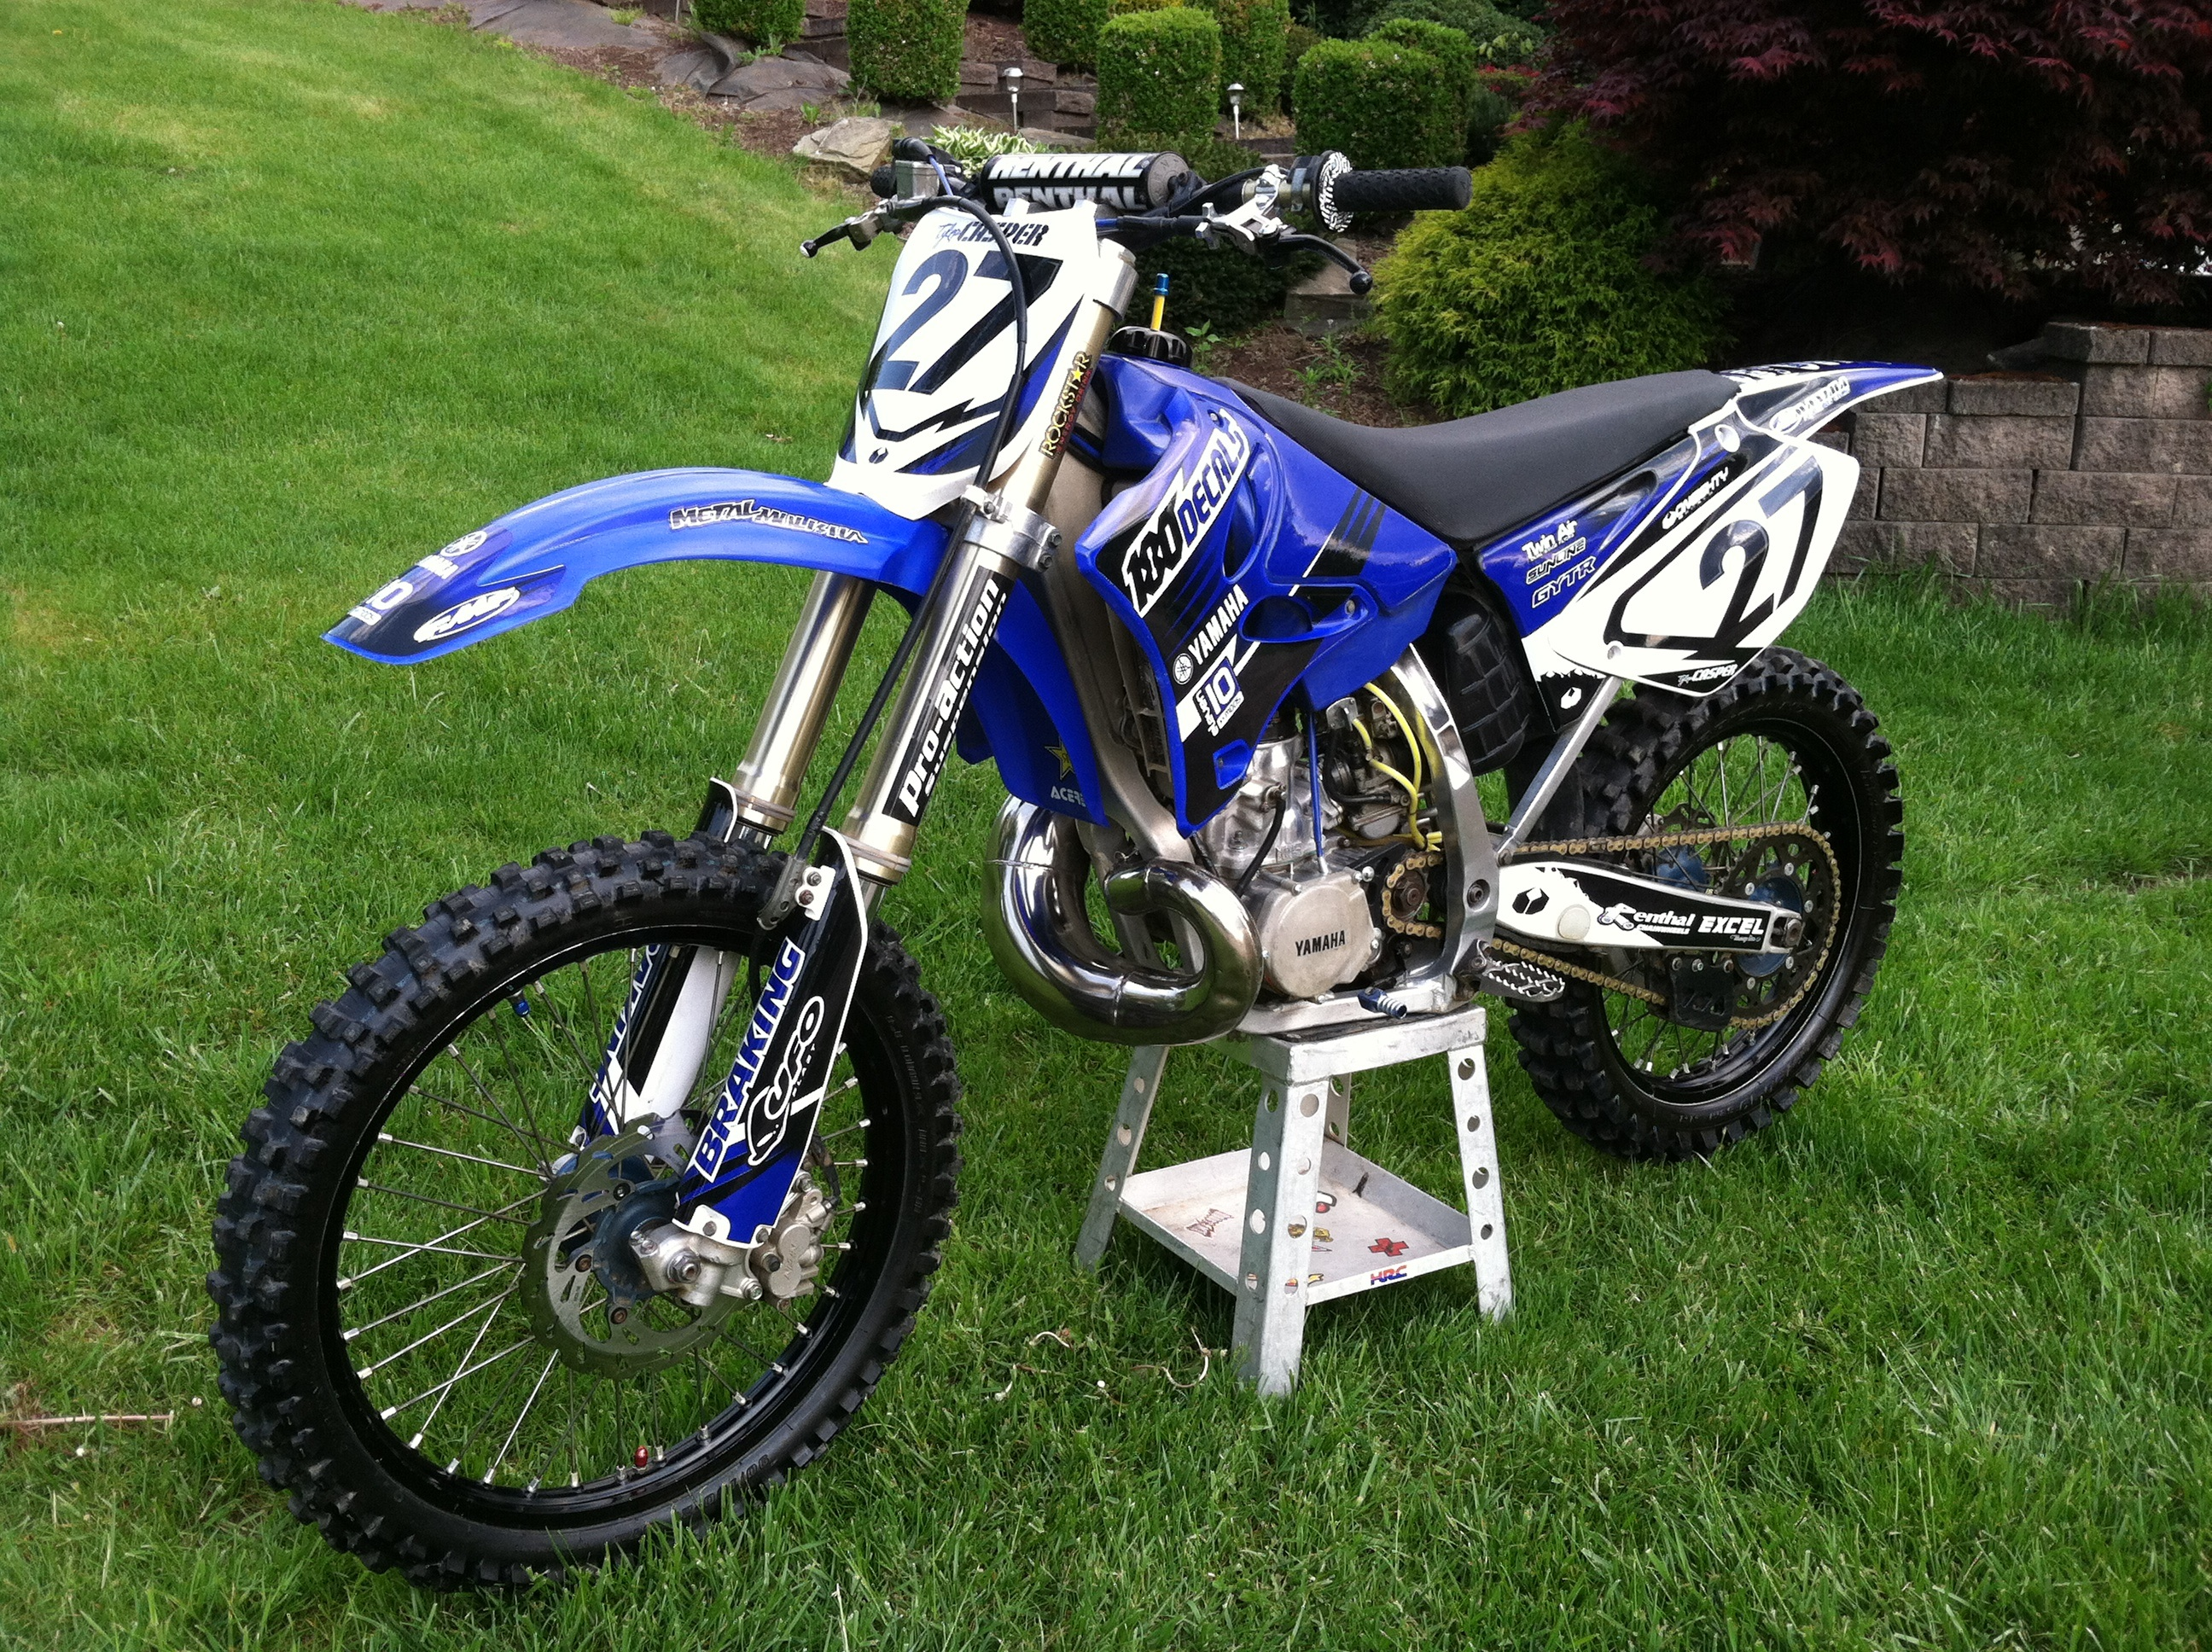 2005 yz 250 2 stroke tyler casper 27 39 s bike check for Yamaha tyler tx